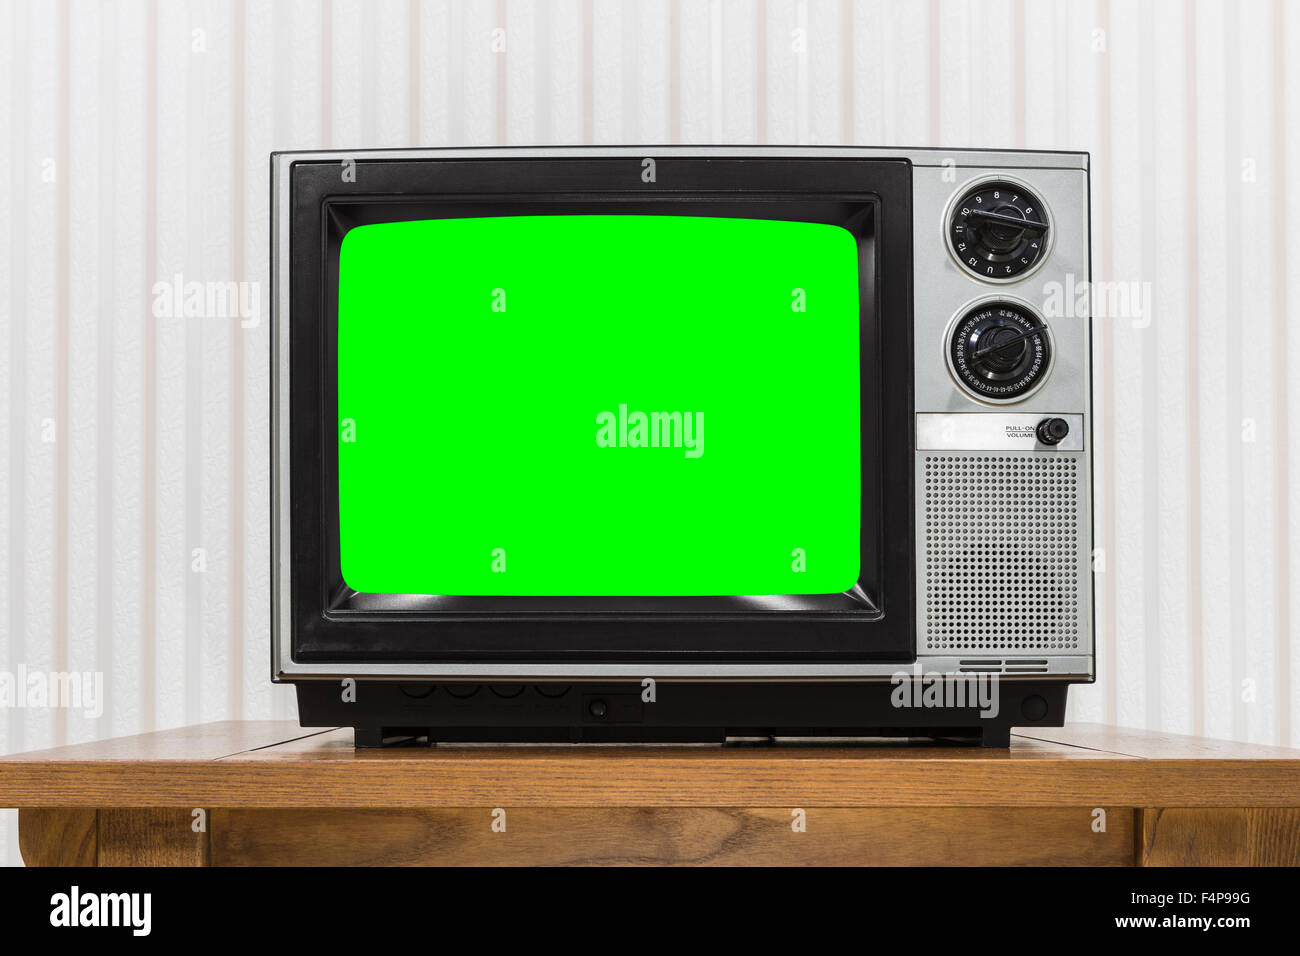 portable tv set stockfotos portable tv set bilder alamy. Black Bedroom Furniture Sets. Home Design Ideas